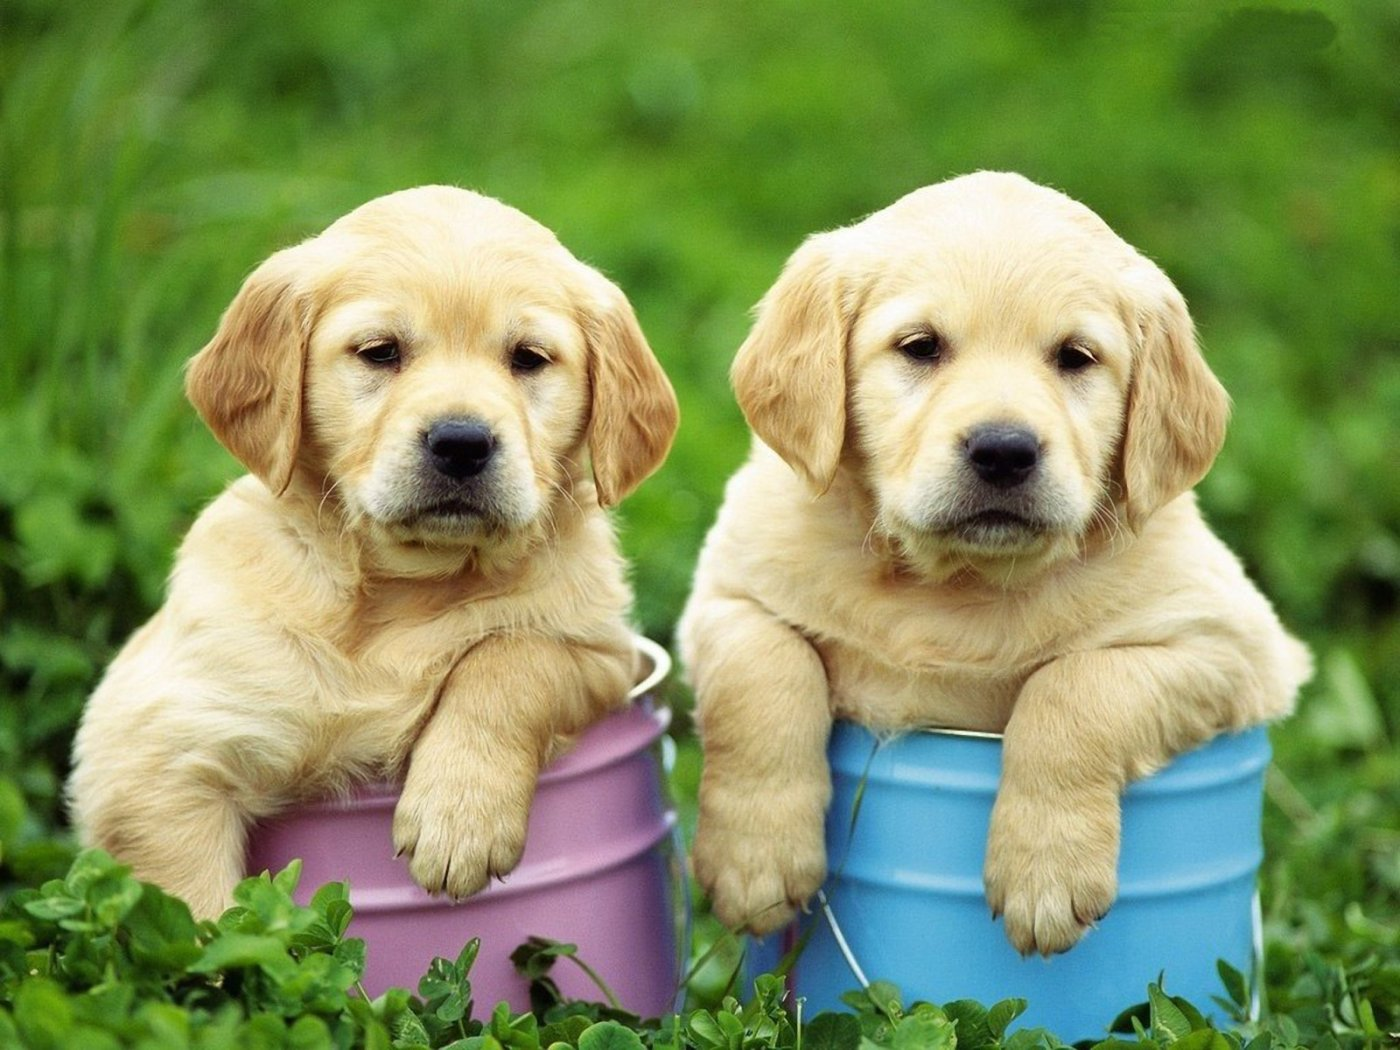 Two Cute Golden Retriever Puppies Photo